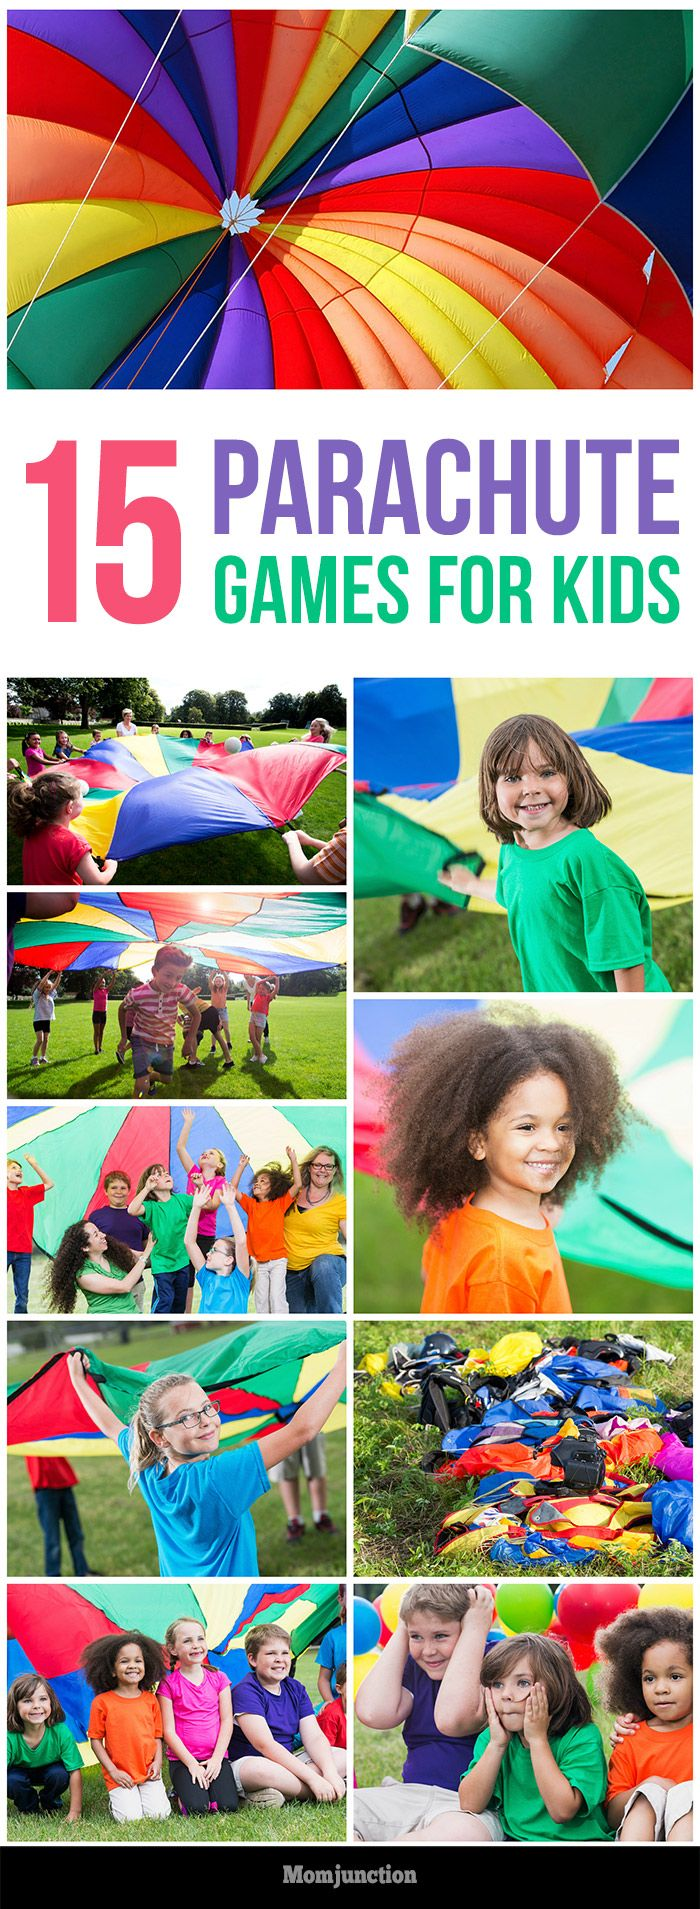 Top 15 Parachute Games For Kids: gear up for some fun with these 15 parachute games for your kids.